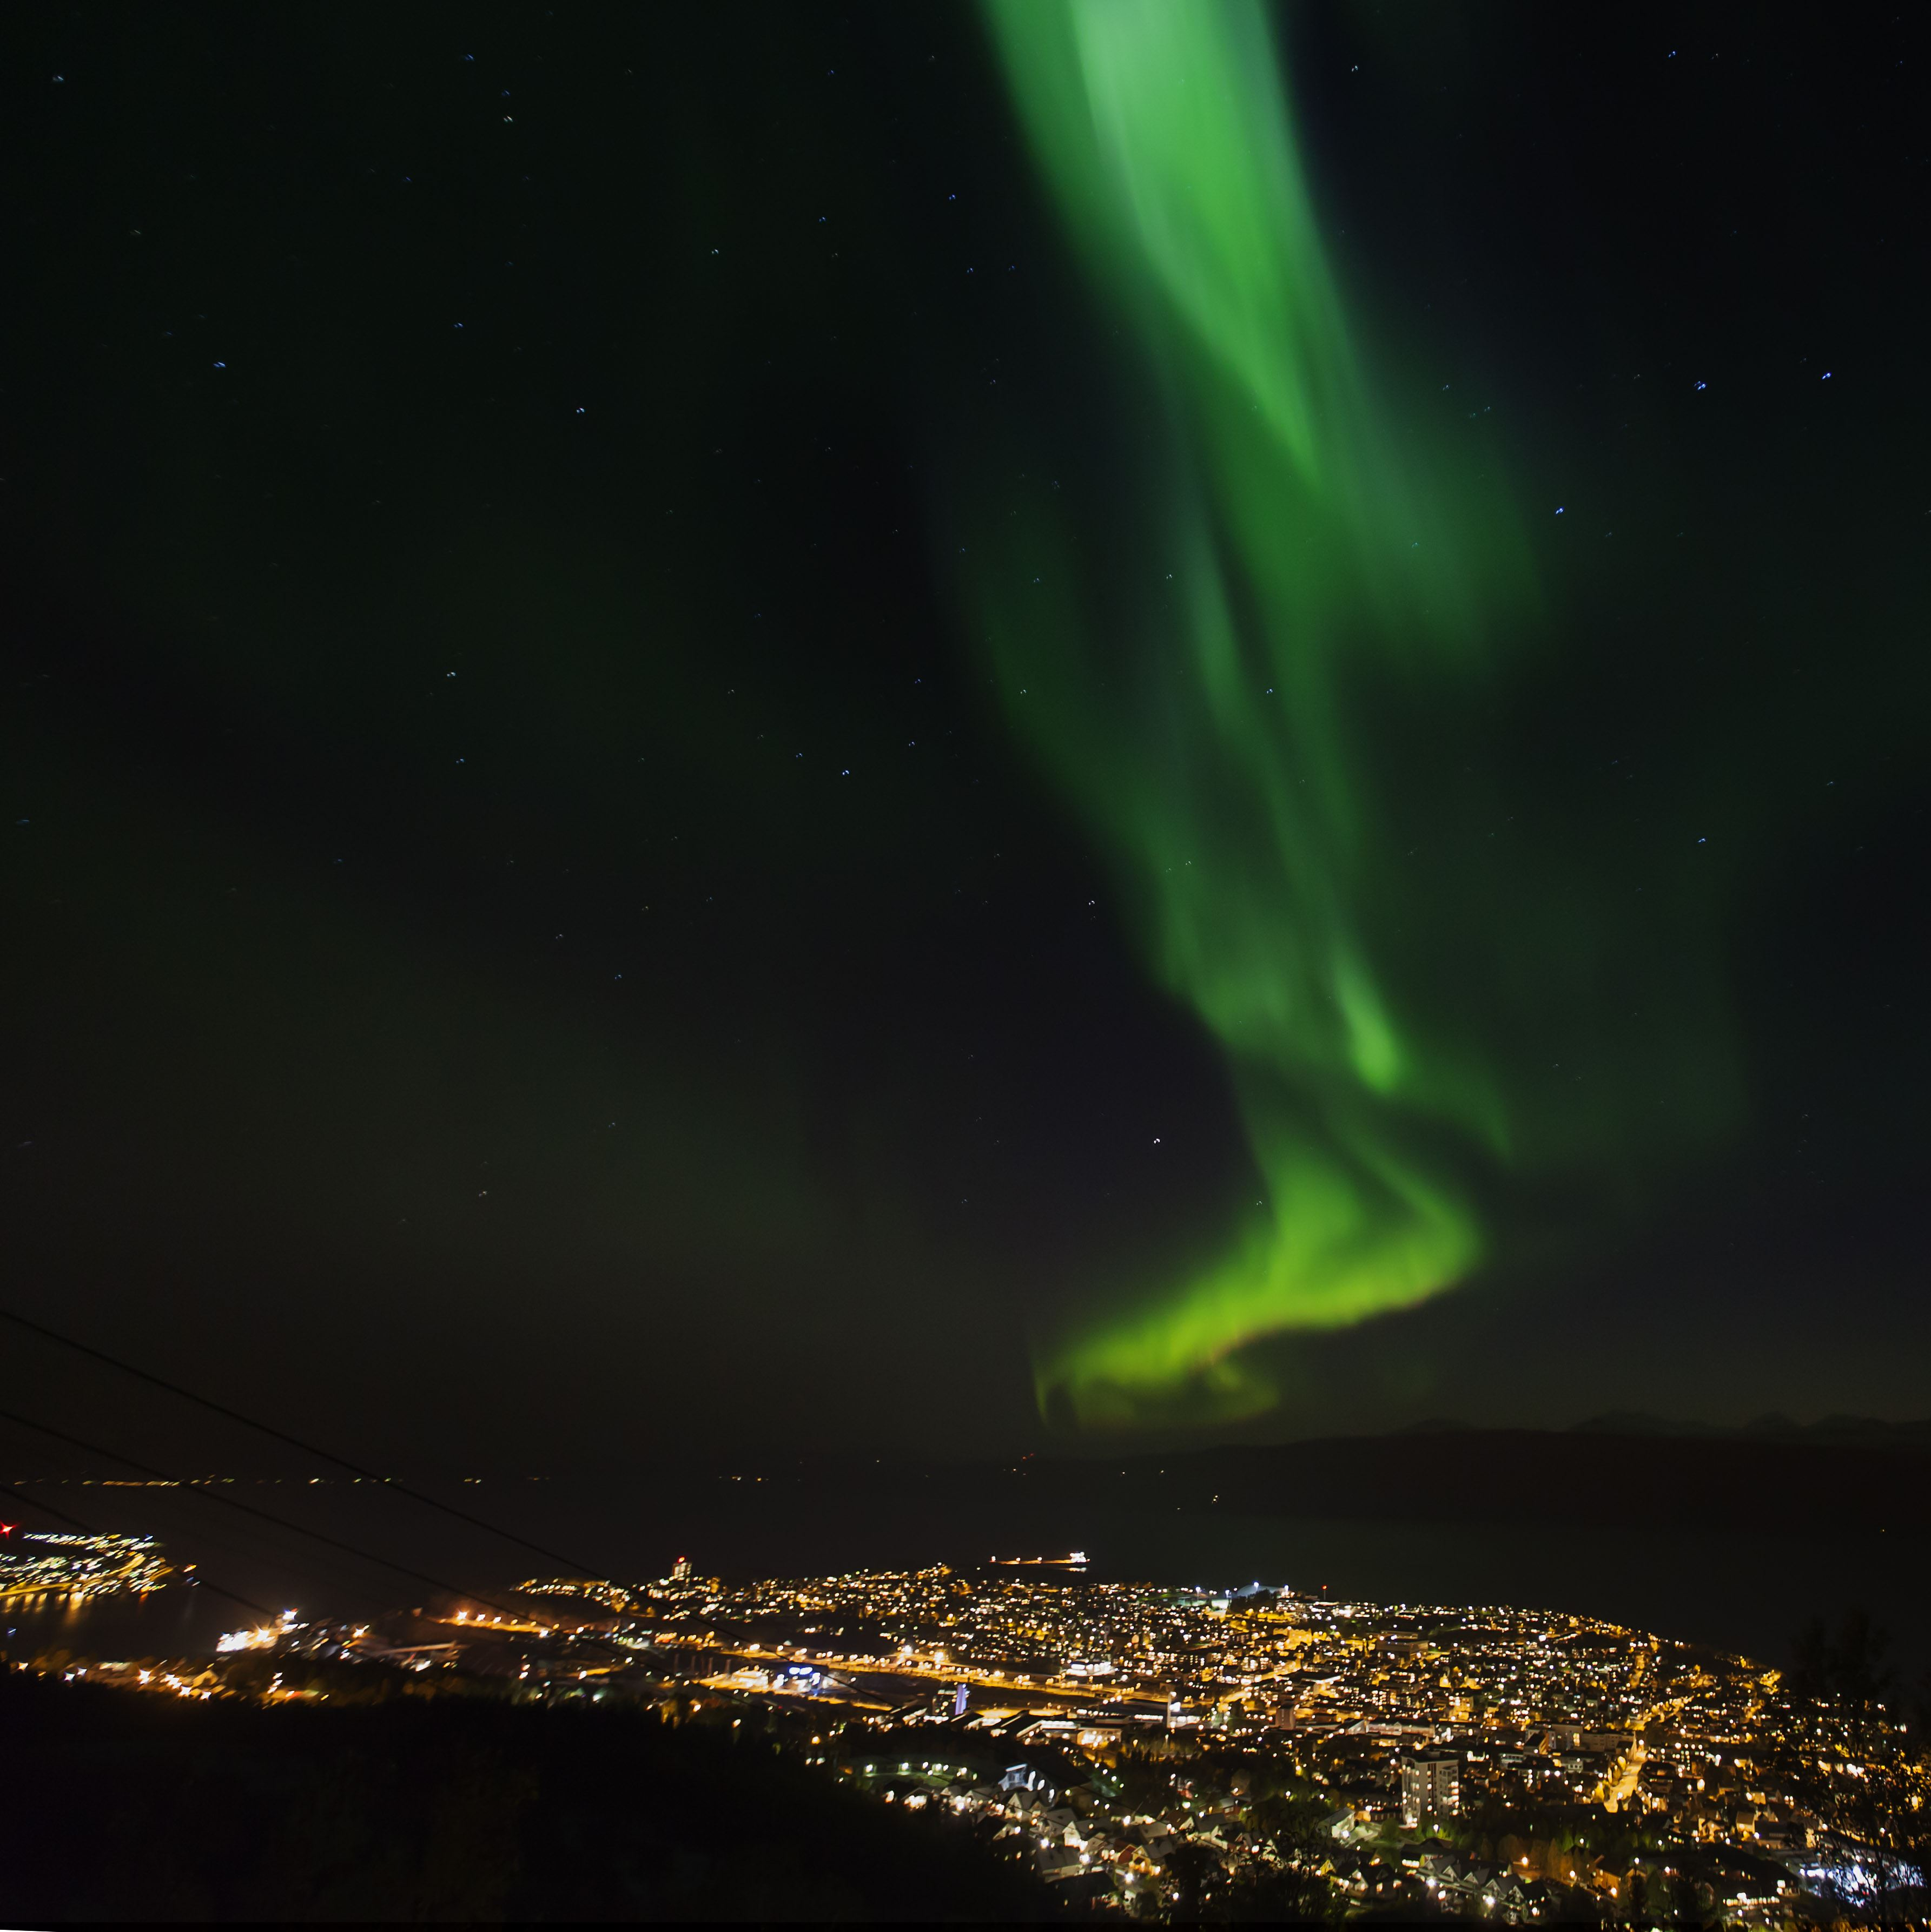 Jan Arne Pettersen,  © Jan Arne Pettersen, Narvik, Aurora, Norhtern Lights, Norway, Northern Norway